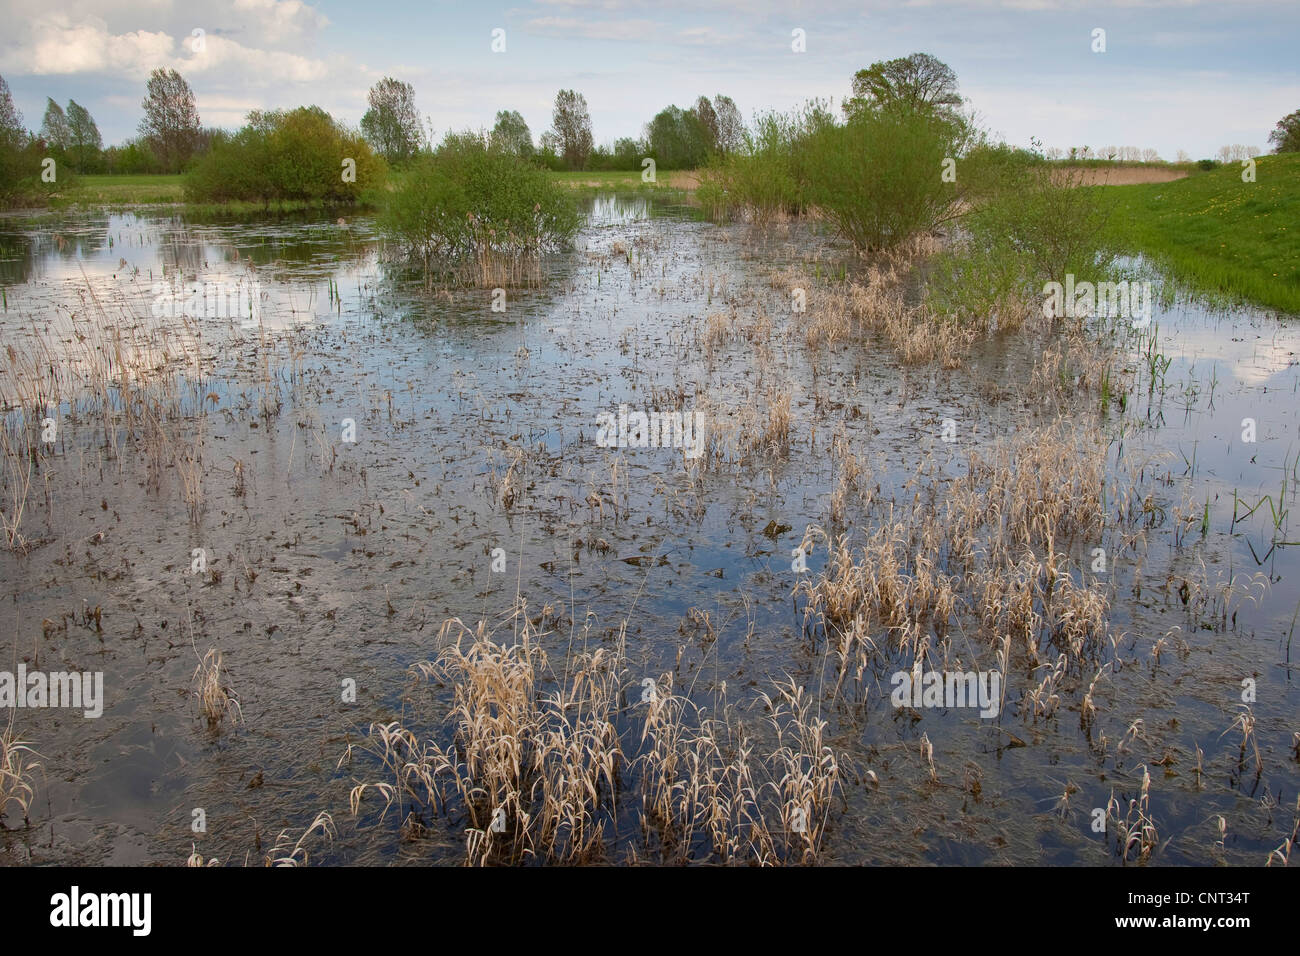 temporary spawning pool for treefrogs and firebelly toads, Germany - Stock Image